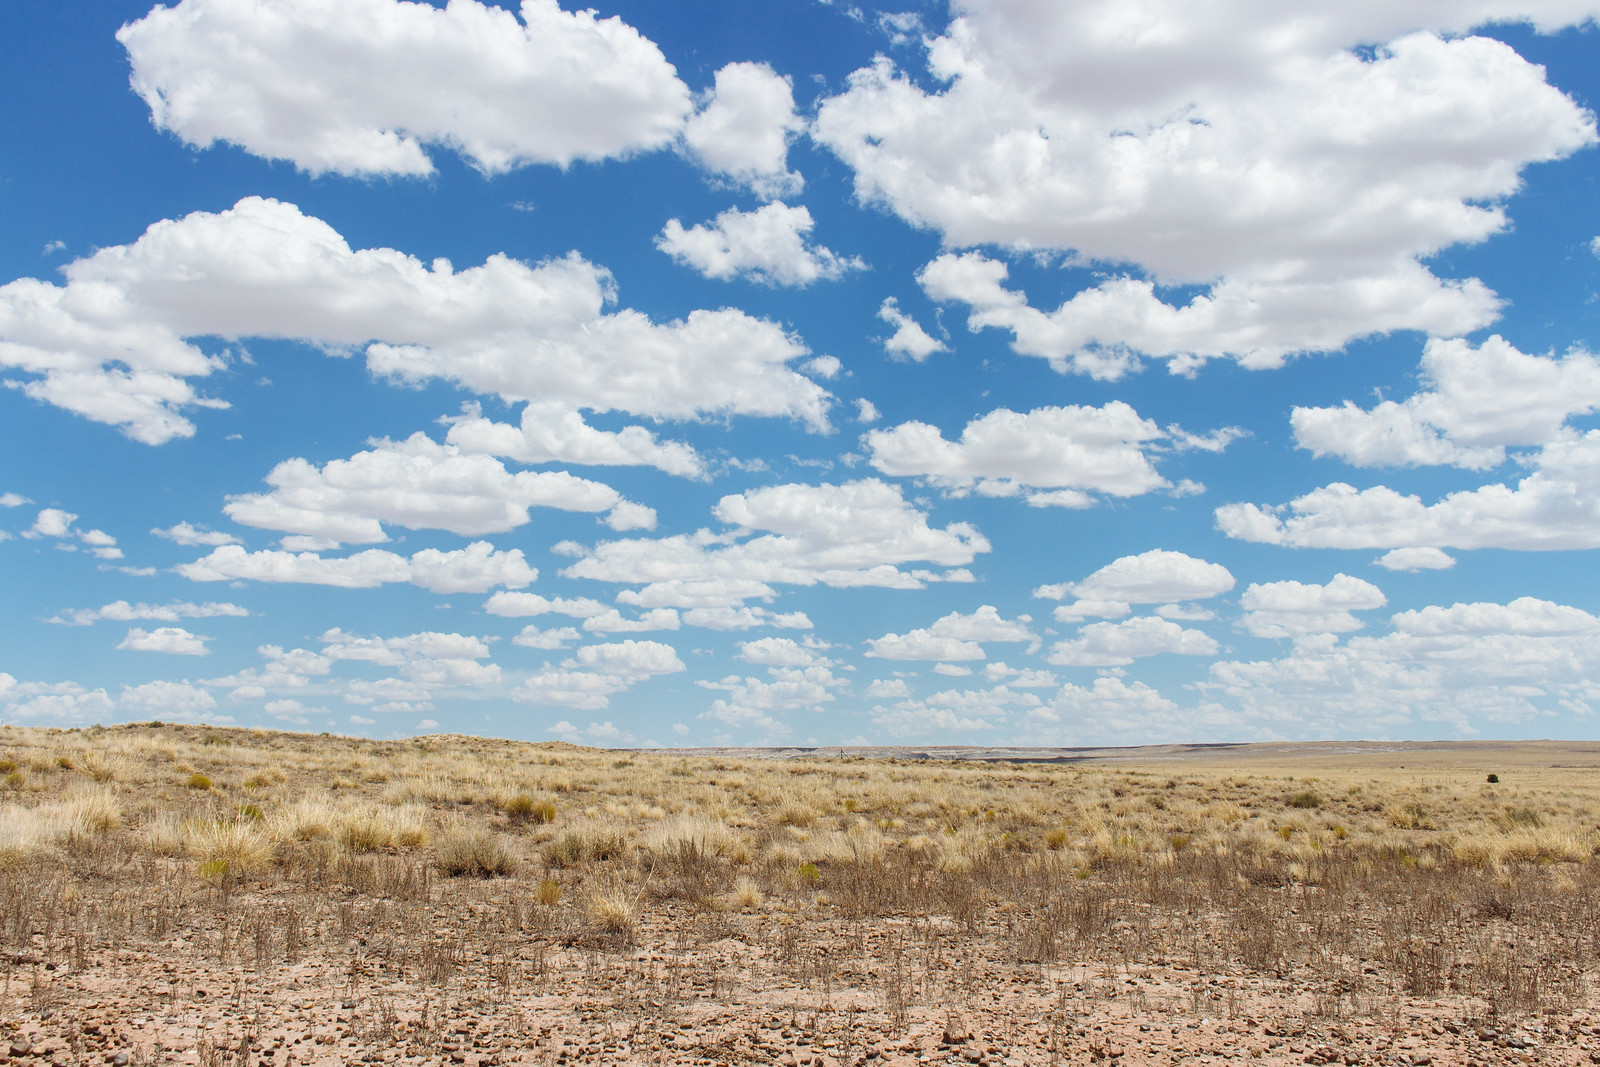 Cumulus clouds in a blue sky over scrublands at Homolovi State Park in Arizona